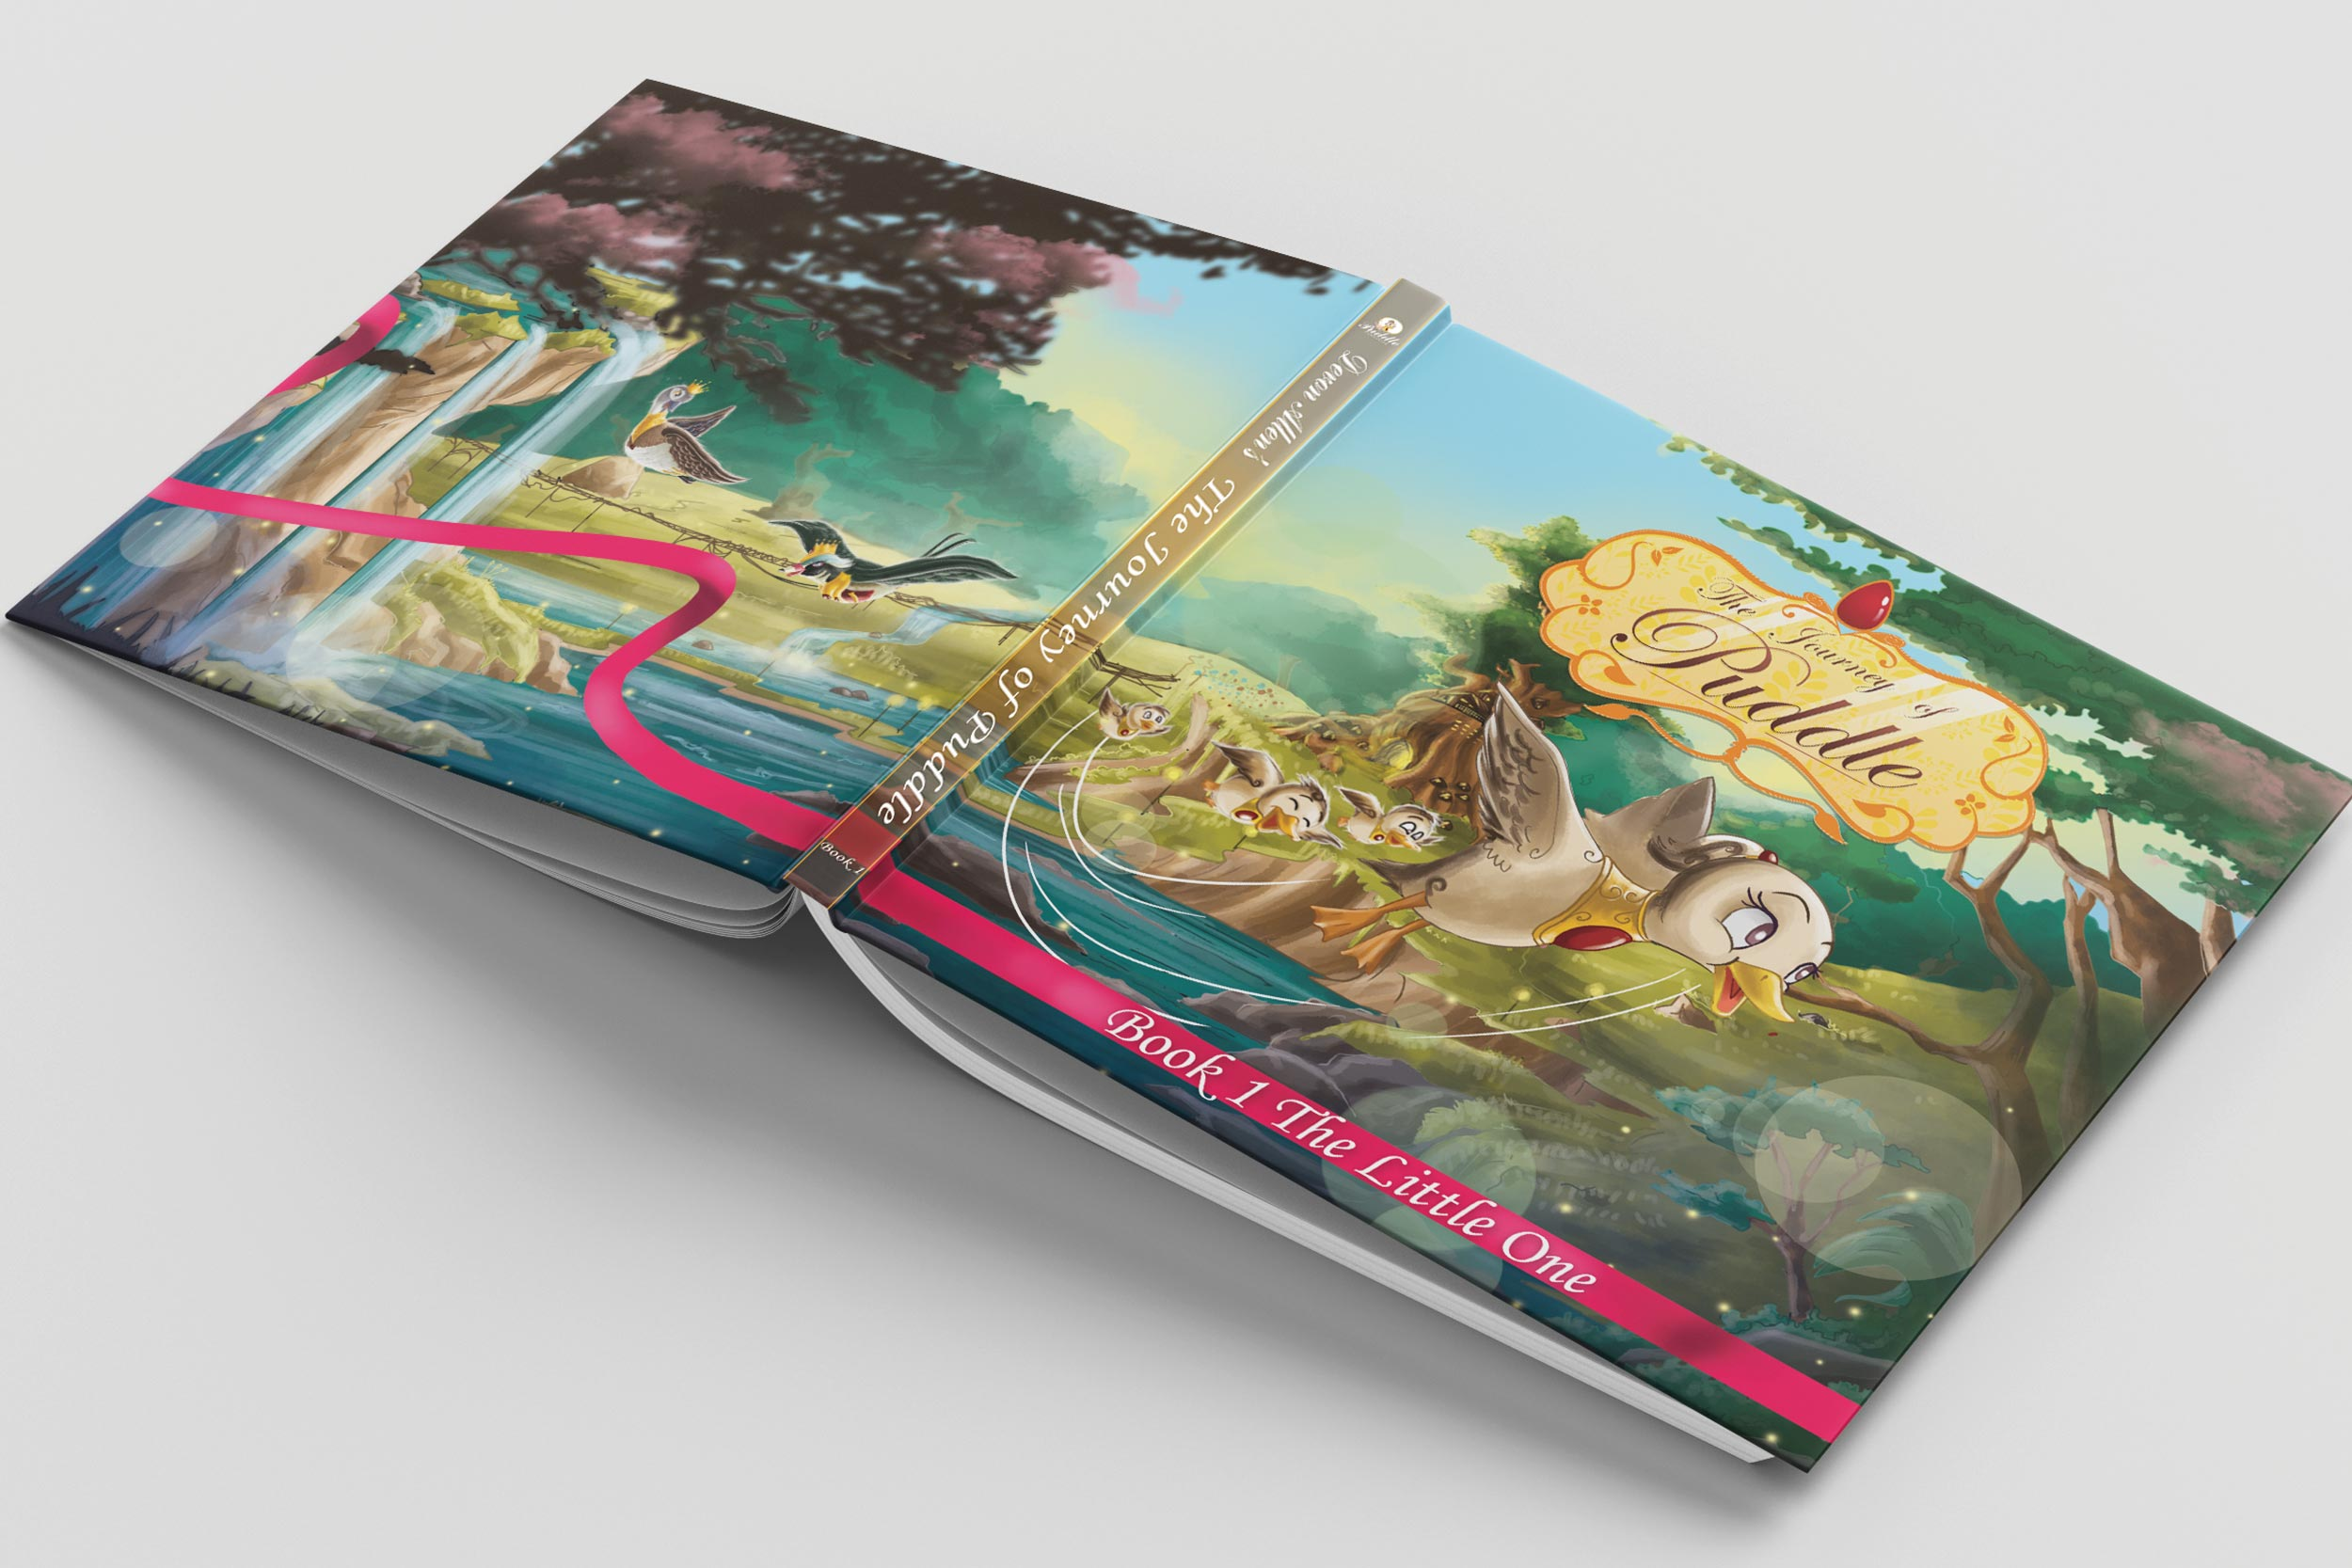 journey-of-puddle-christian-illustrated-children-books-book-1-look-inside-book-cover.jpg